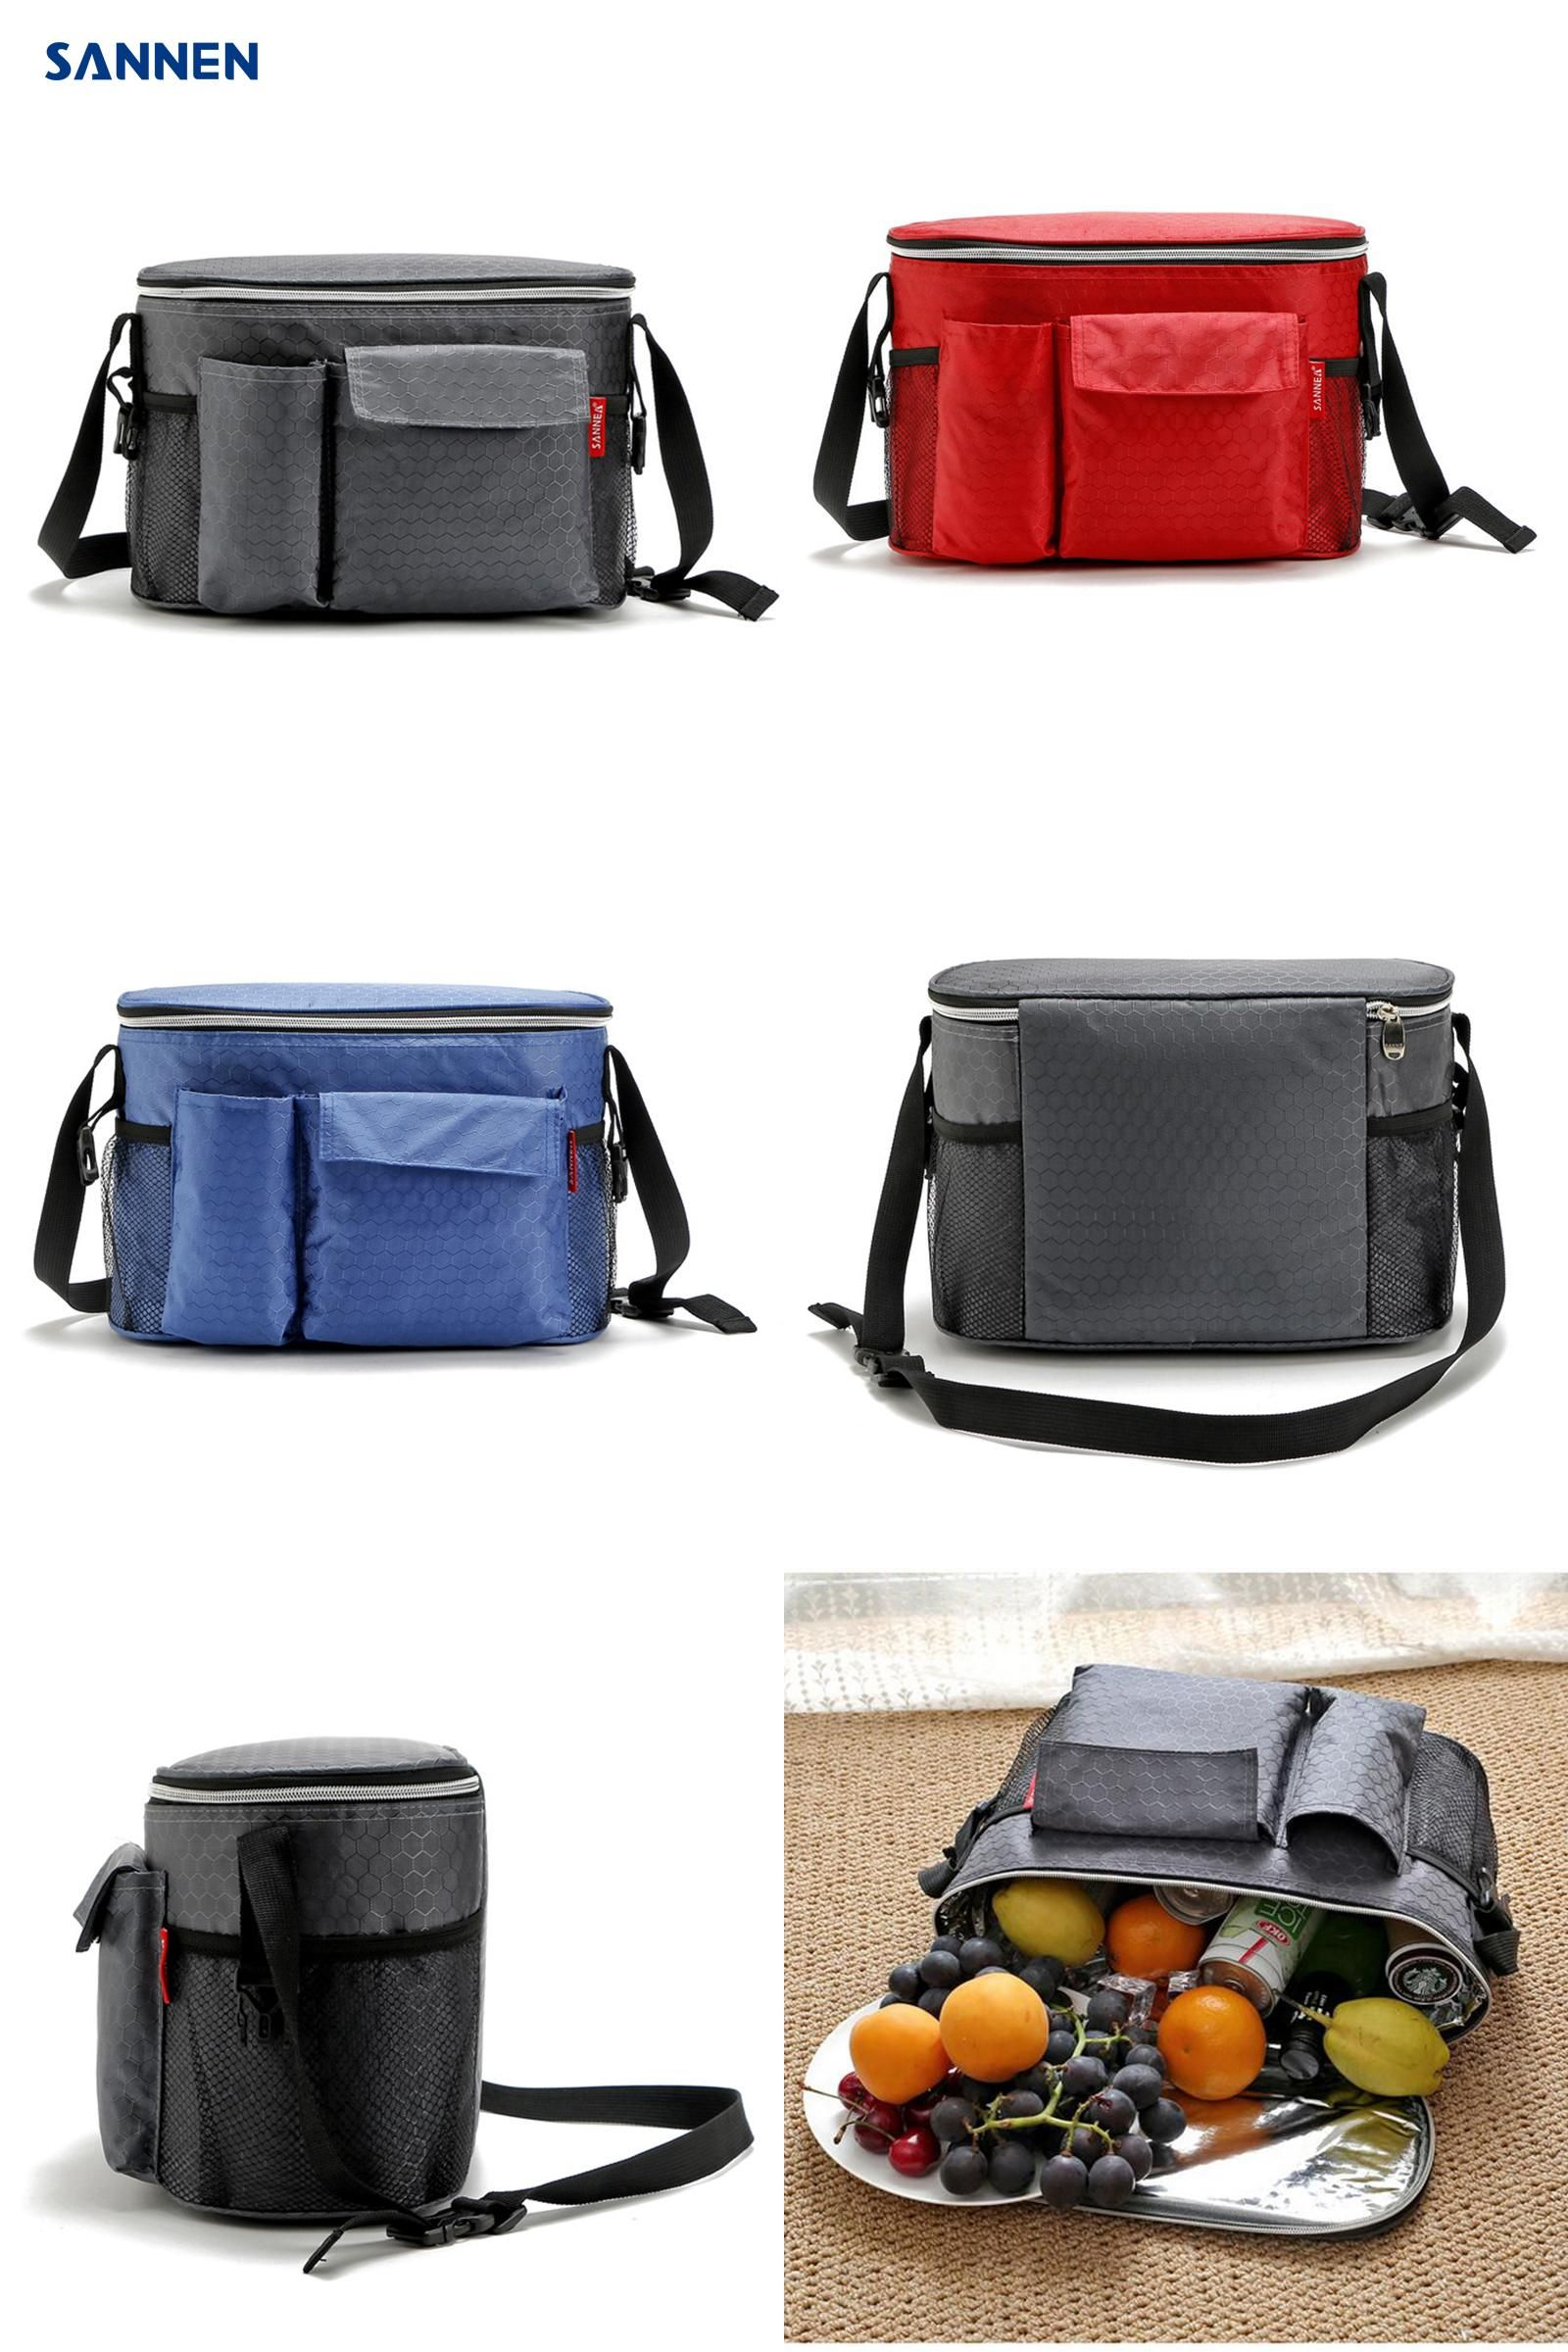 Visit To Buy Sannen 8l Oxford Thermal Lunch Bags For Women Adults Men Food Lunch Picnic Cooler Bag Insulated S Thermal Lunch Bag Picnic Cooler Bag Bottle Bag